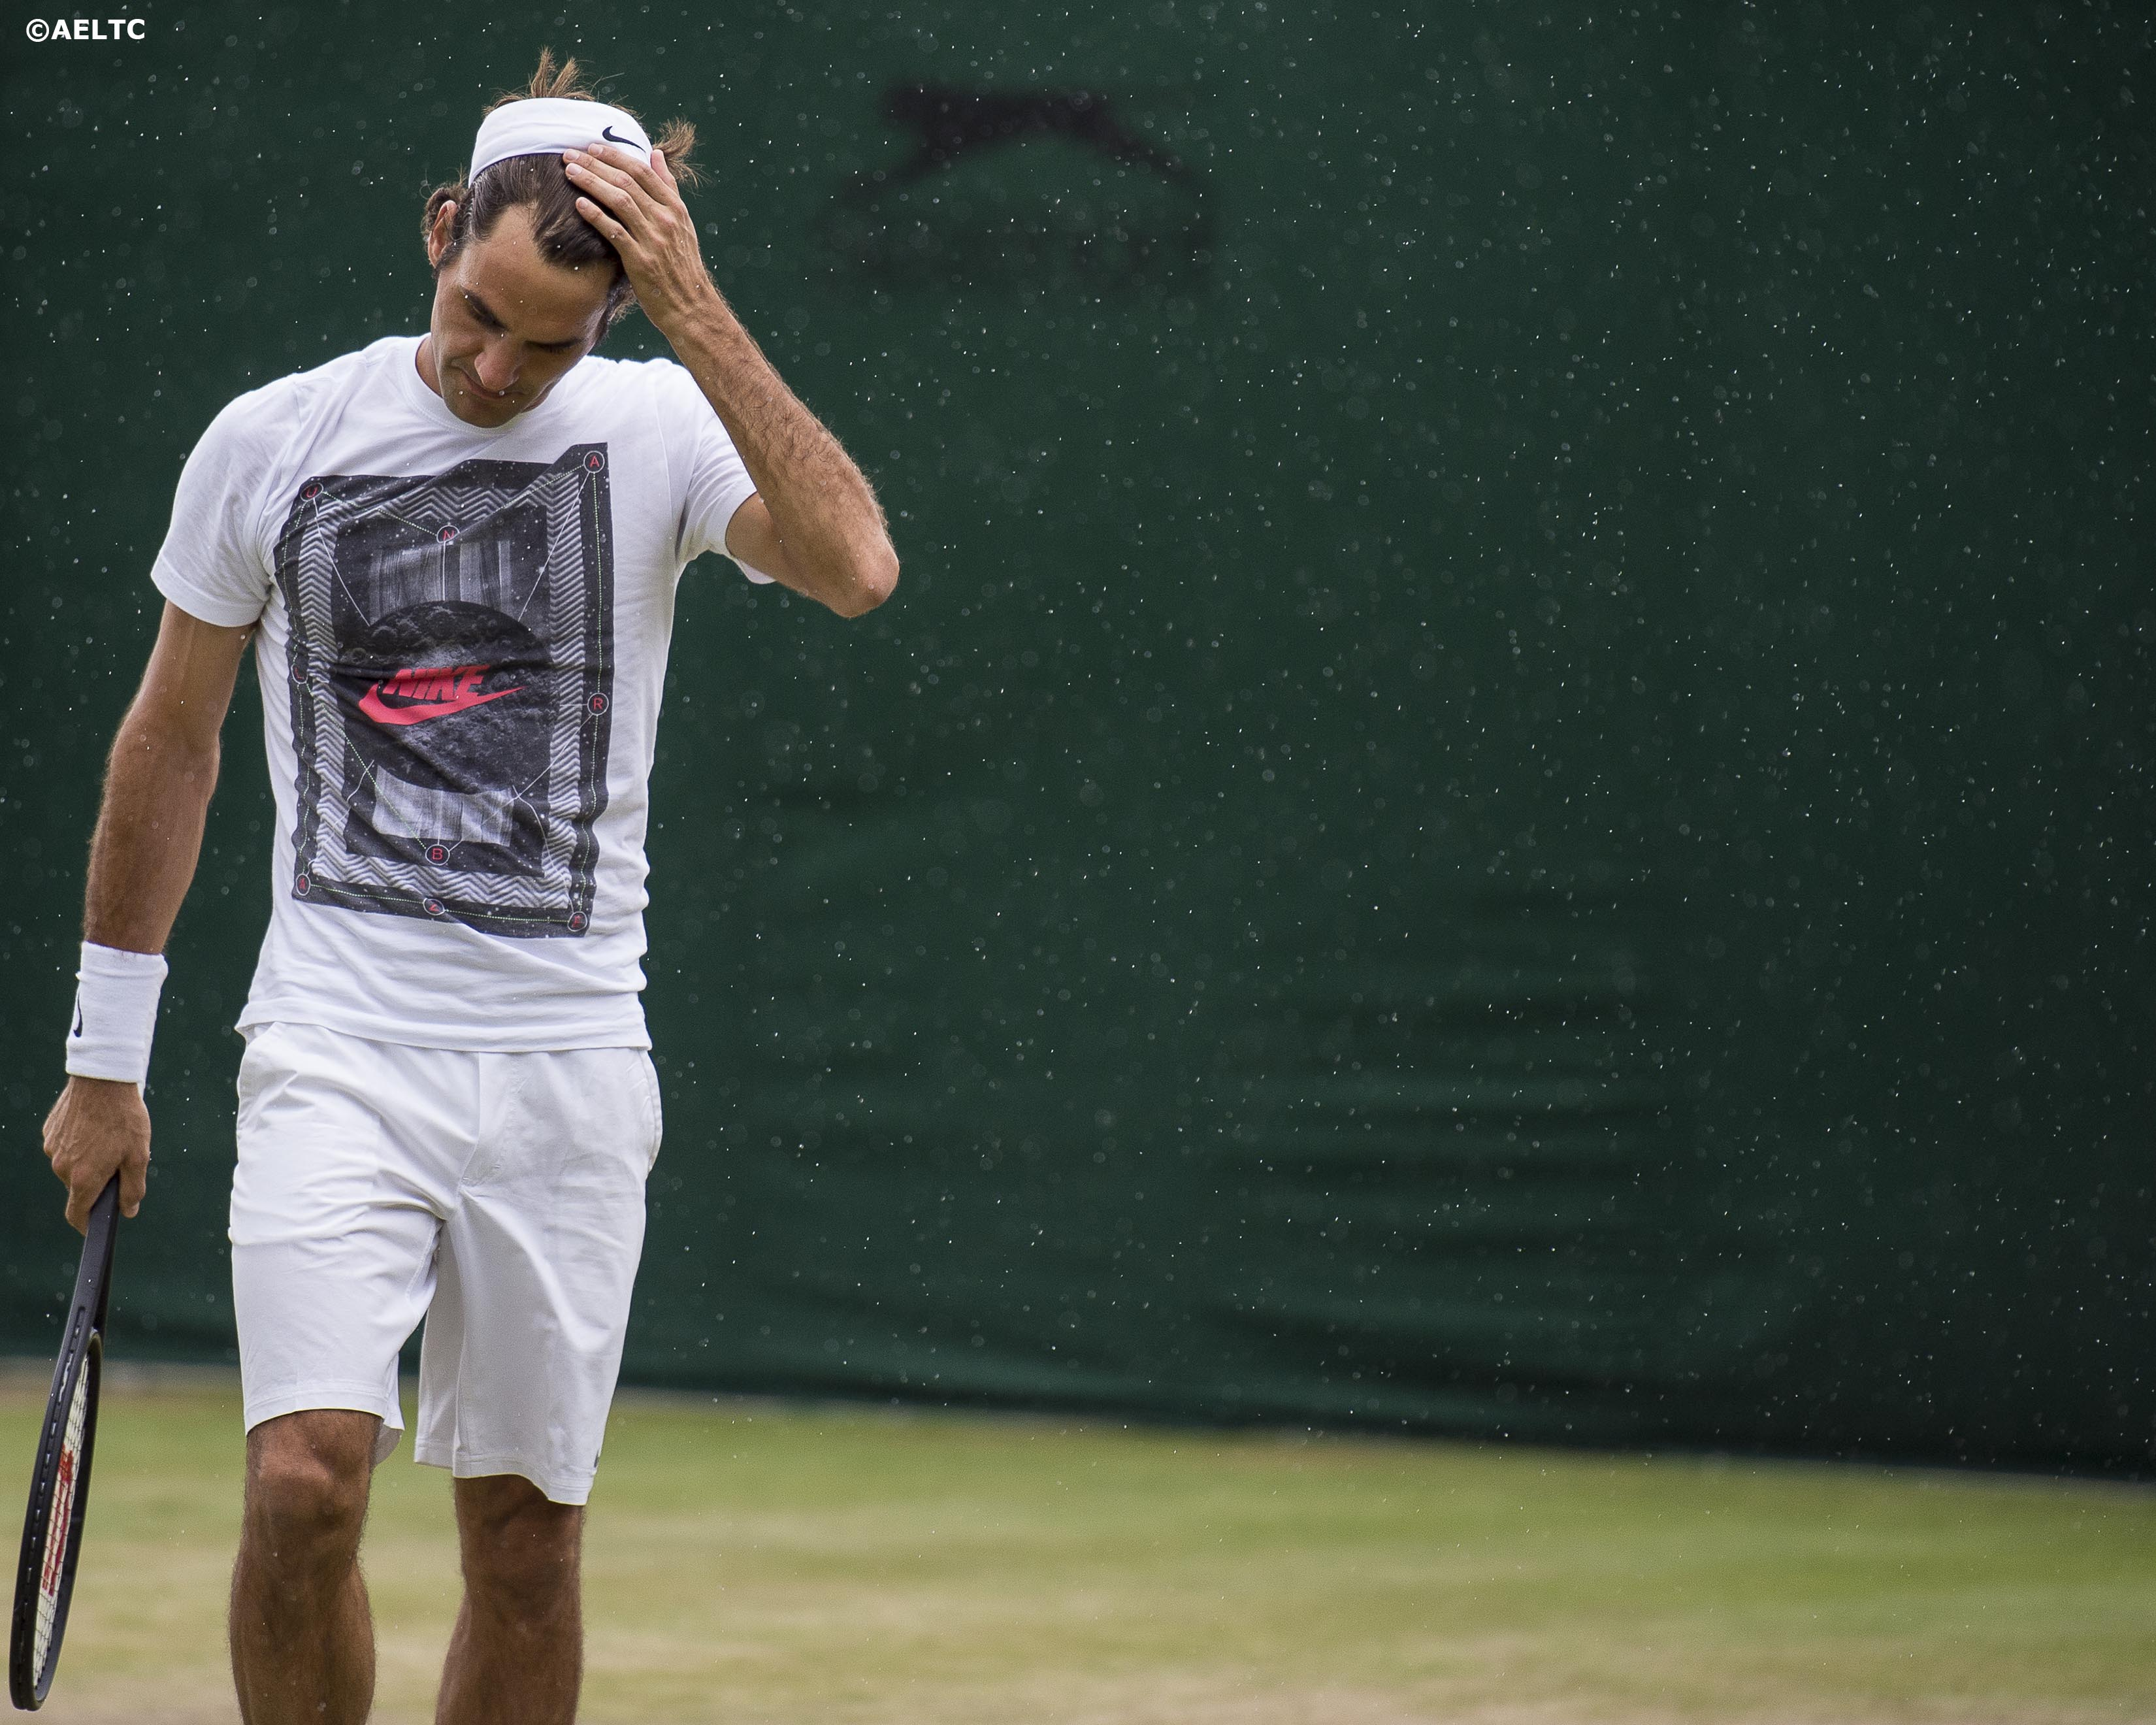 """""""Roger Federer removes his headband as rain falls during a practice session at the All England Lawn and Tennis Club in London, England Saturday, July 5, 2014 during the 2014 Championships Wimbledon."""""""